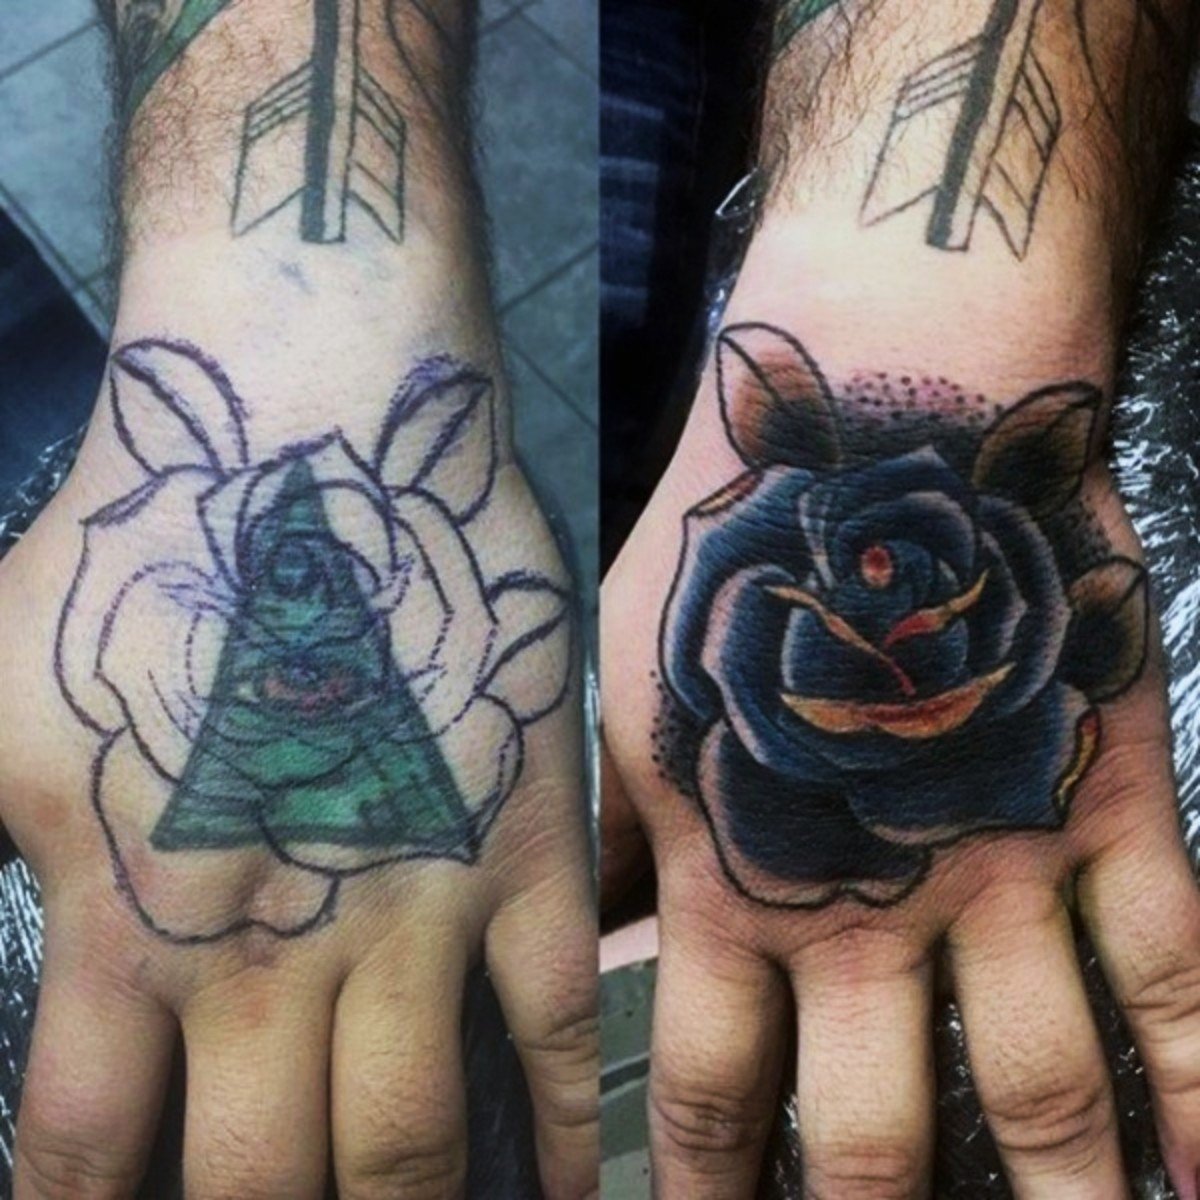 Cover-Up-Tattoo-Ideas-Before-and-After37